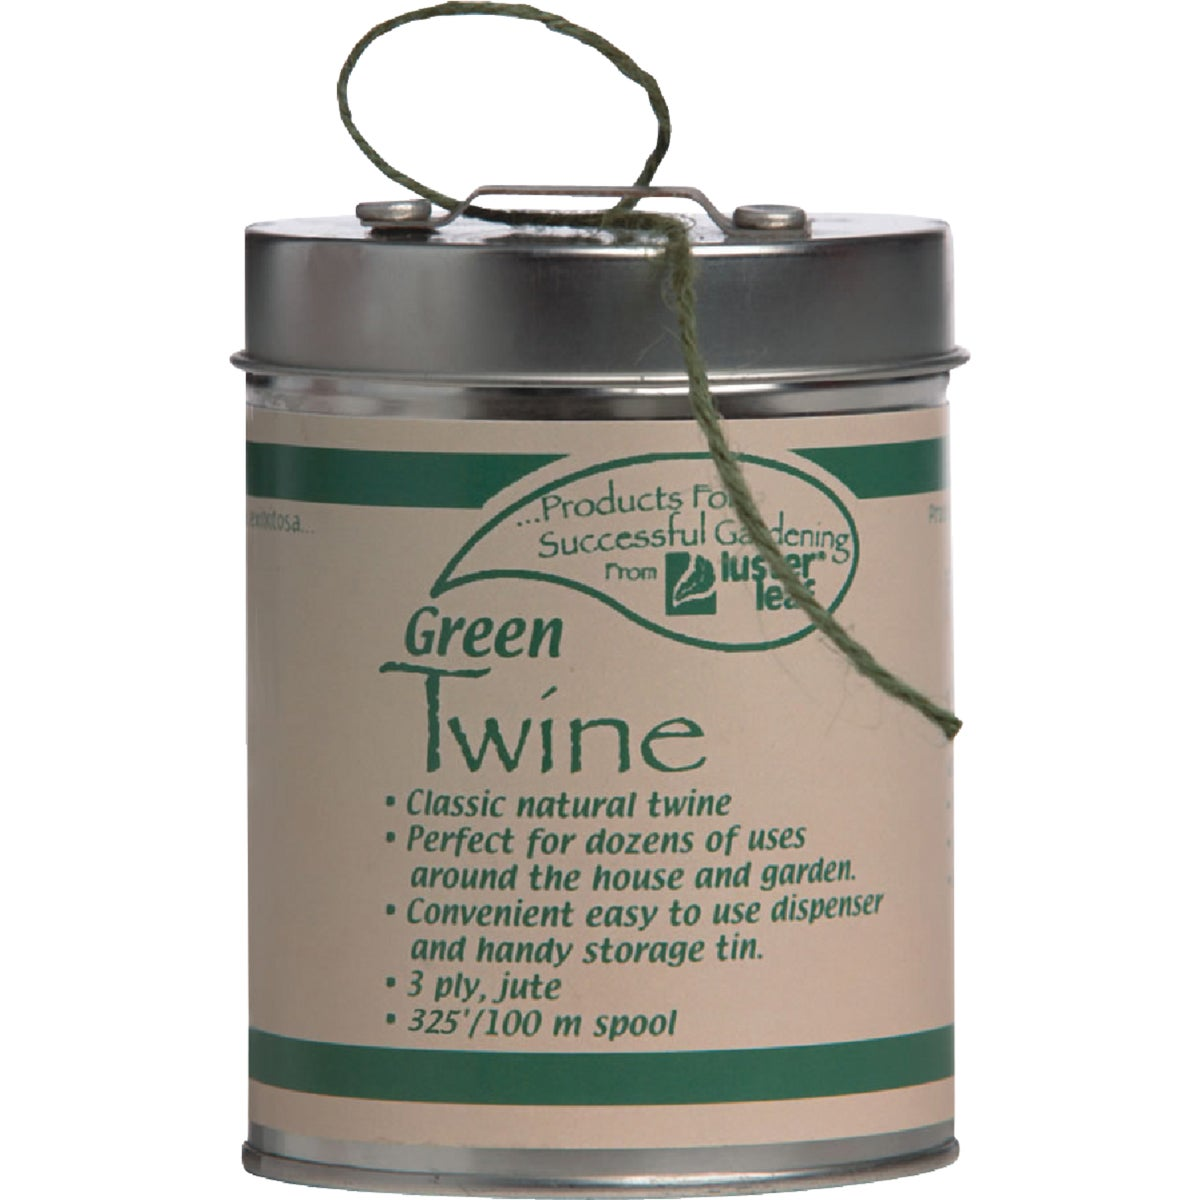 325' CAN GREEN TWINE